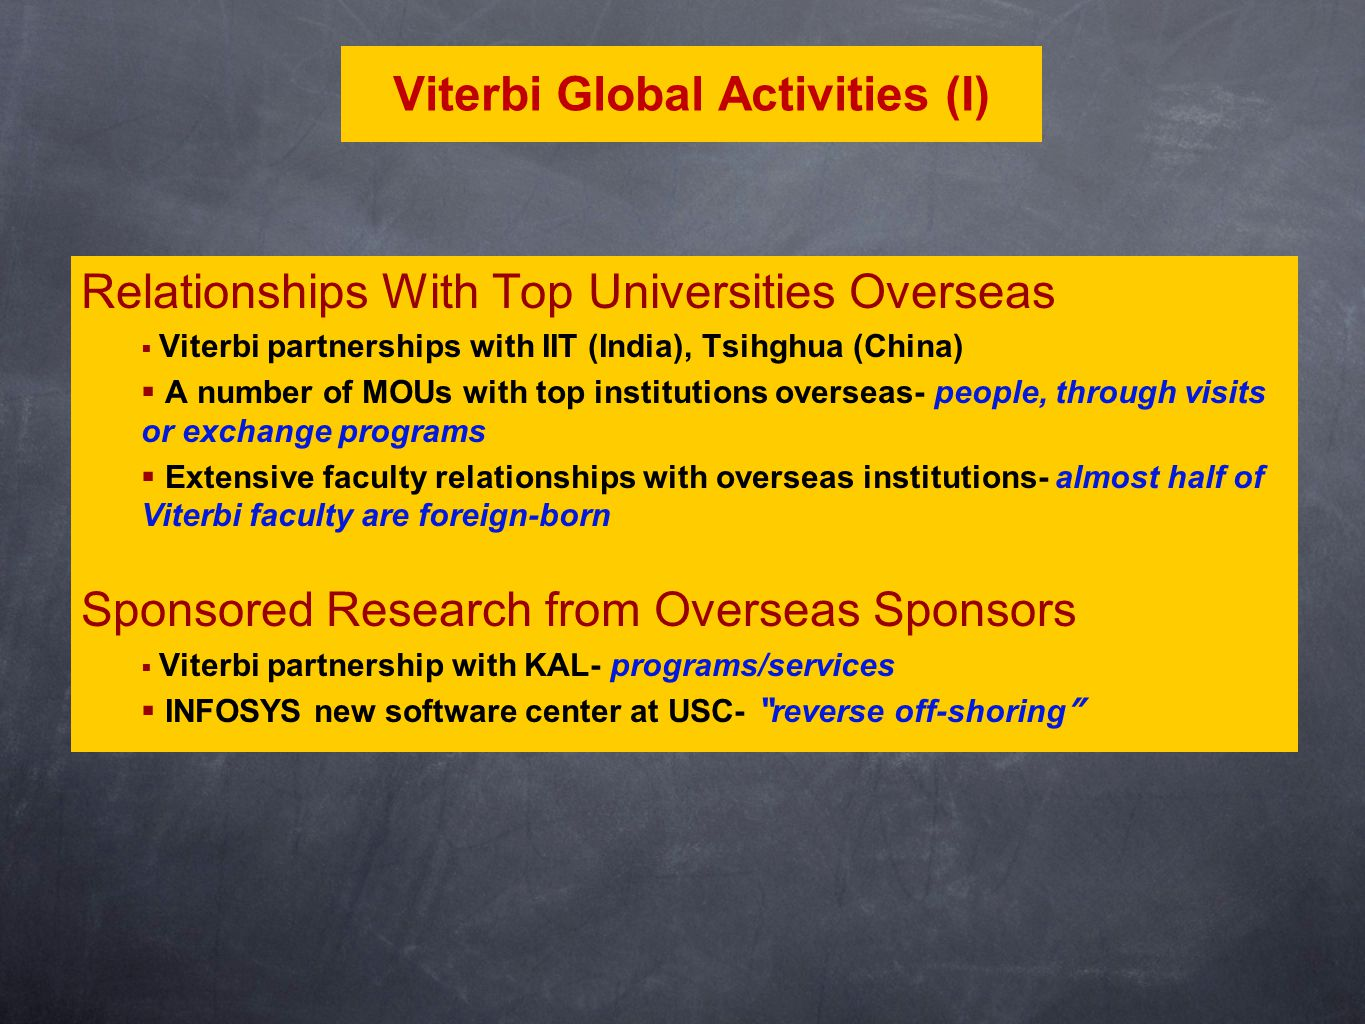 Relationships With Top Universities Overseas  Viterbi partnerships with IIT (India), Tsihghua (China)  A number of MOUs with top institutions overse